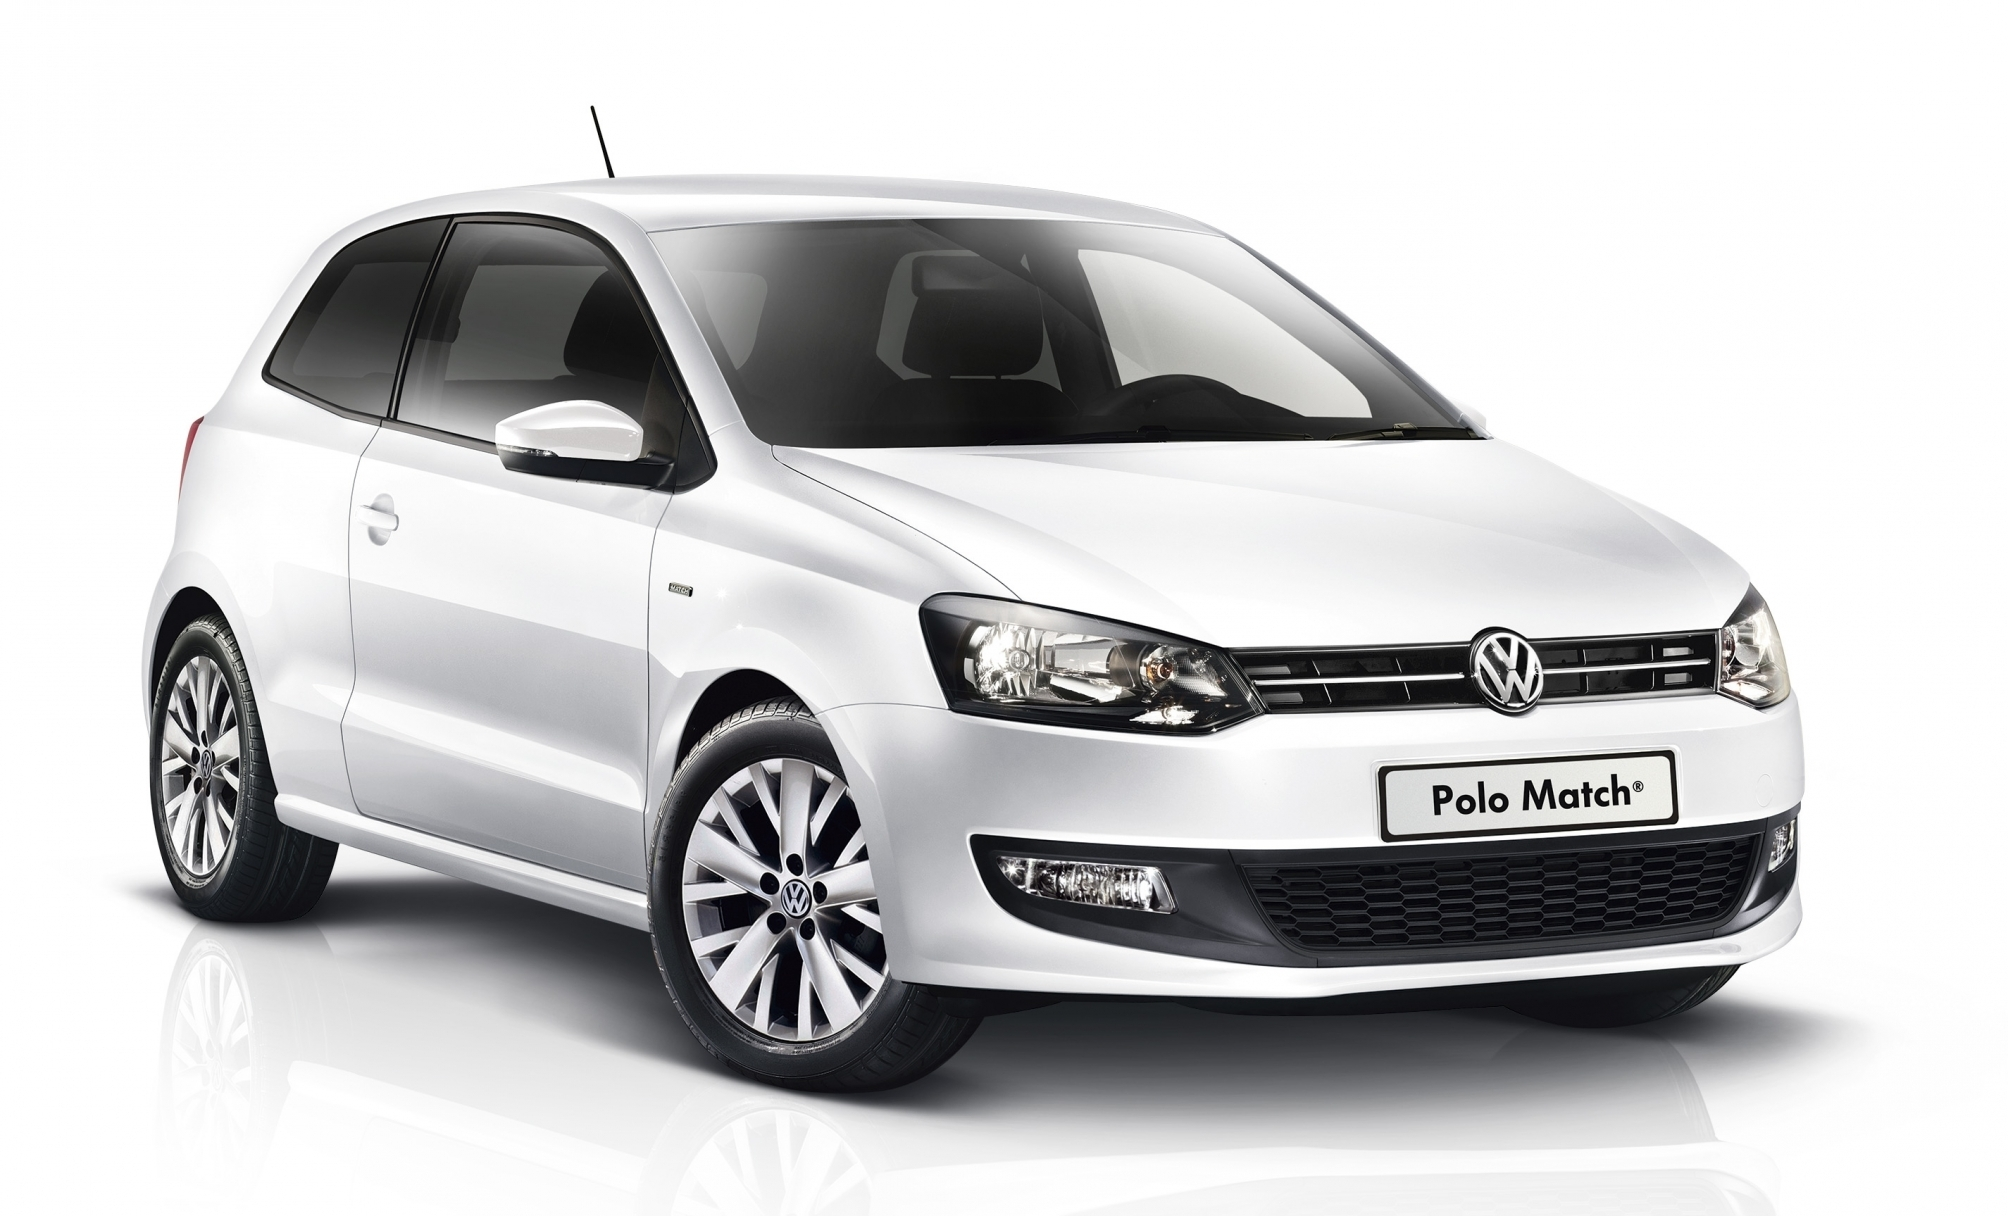 volkswagen lance les polo match et passat ultimate. Black Bedroom Furniture Sets. Home Design Ideas